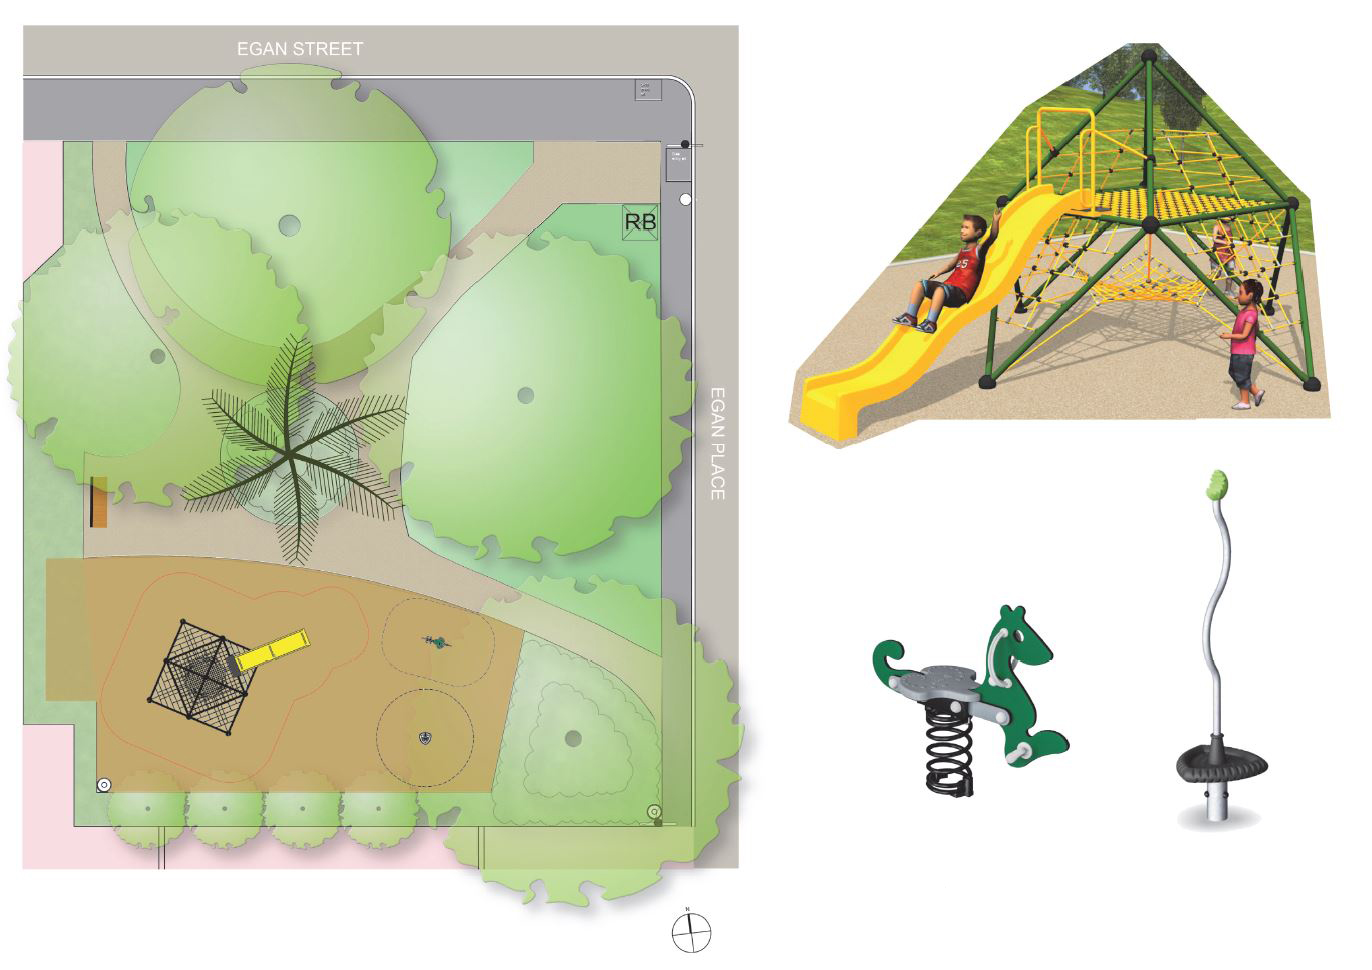 Park design, featuring climbing frame and slide, spinner and rocker.